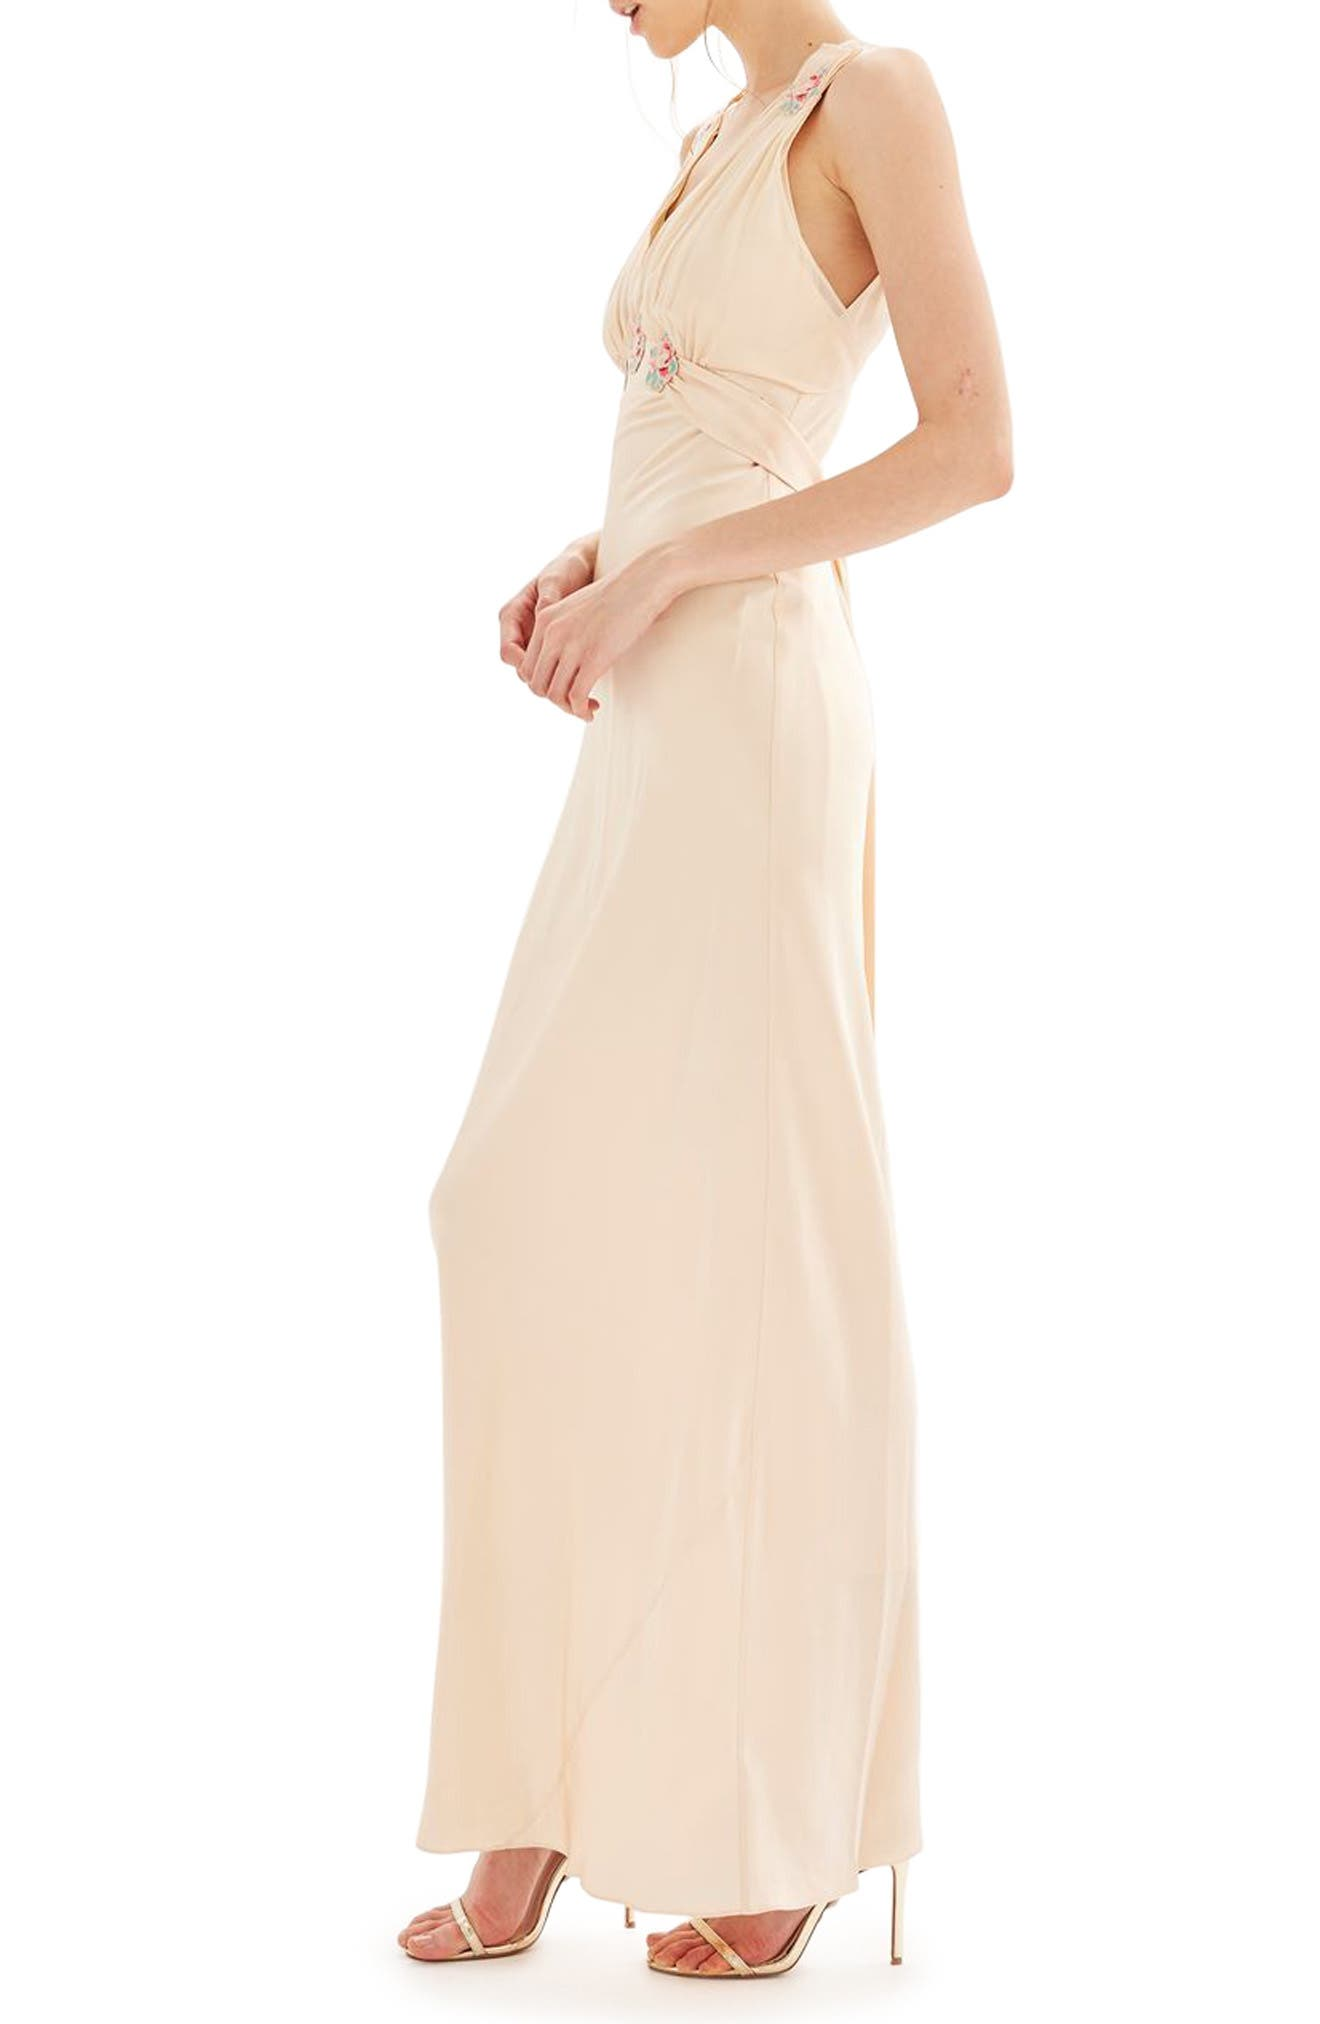 Bride Embroidered Silk Gown,                             Alternate thumbnail 3, color,                             250